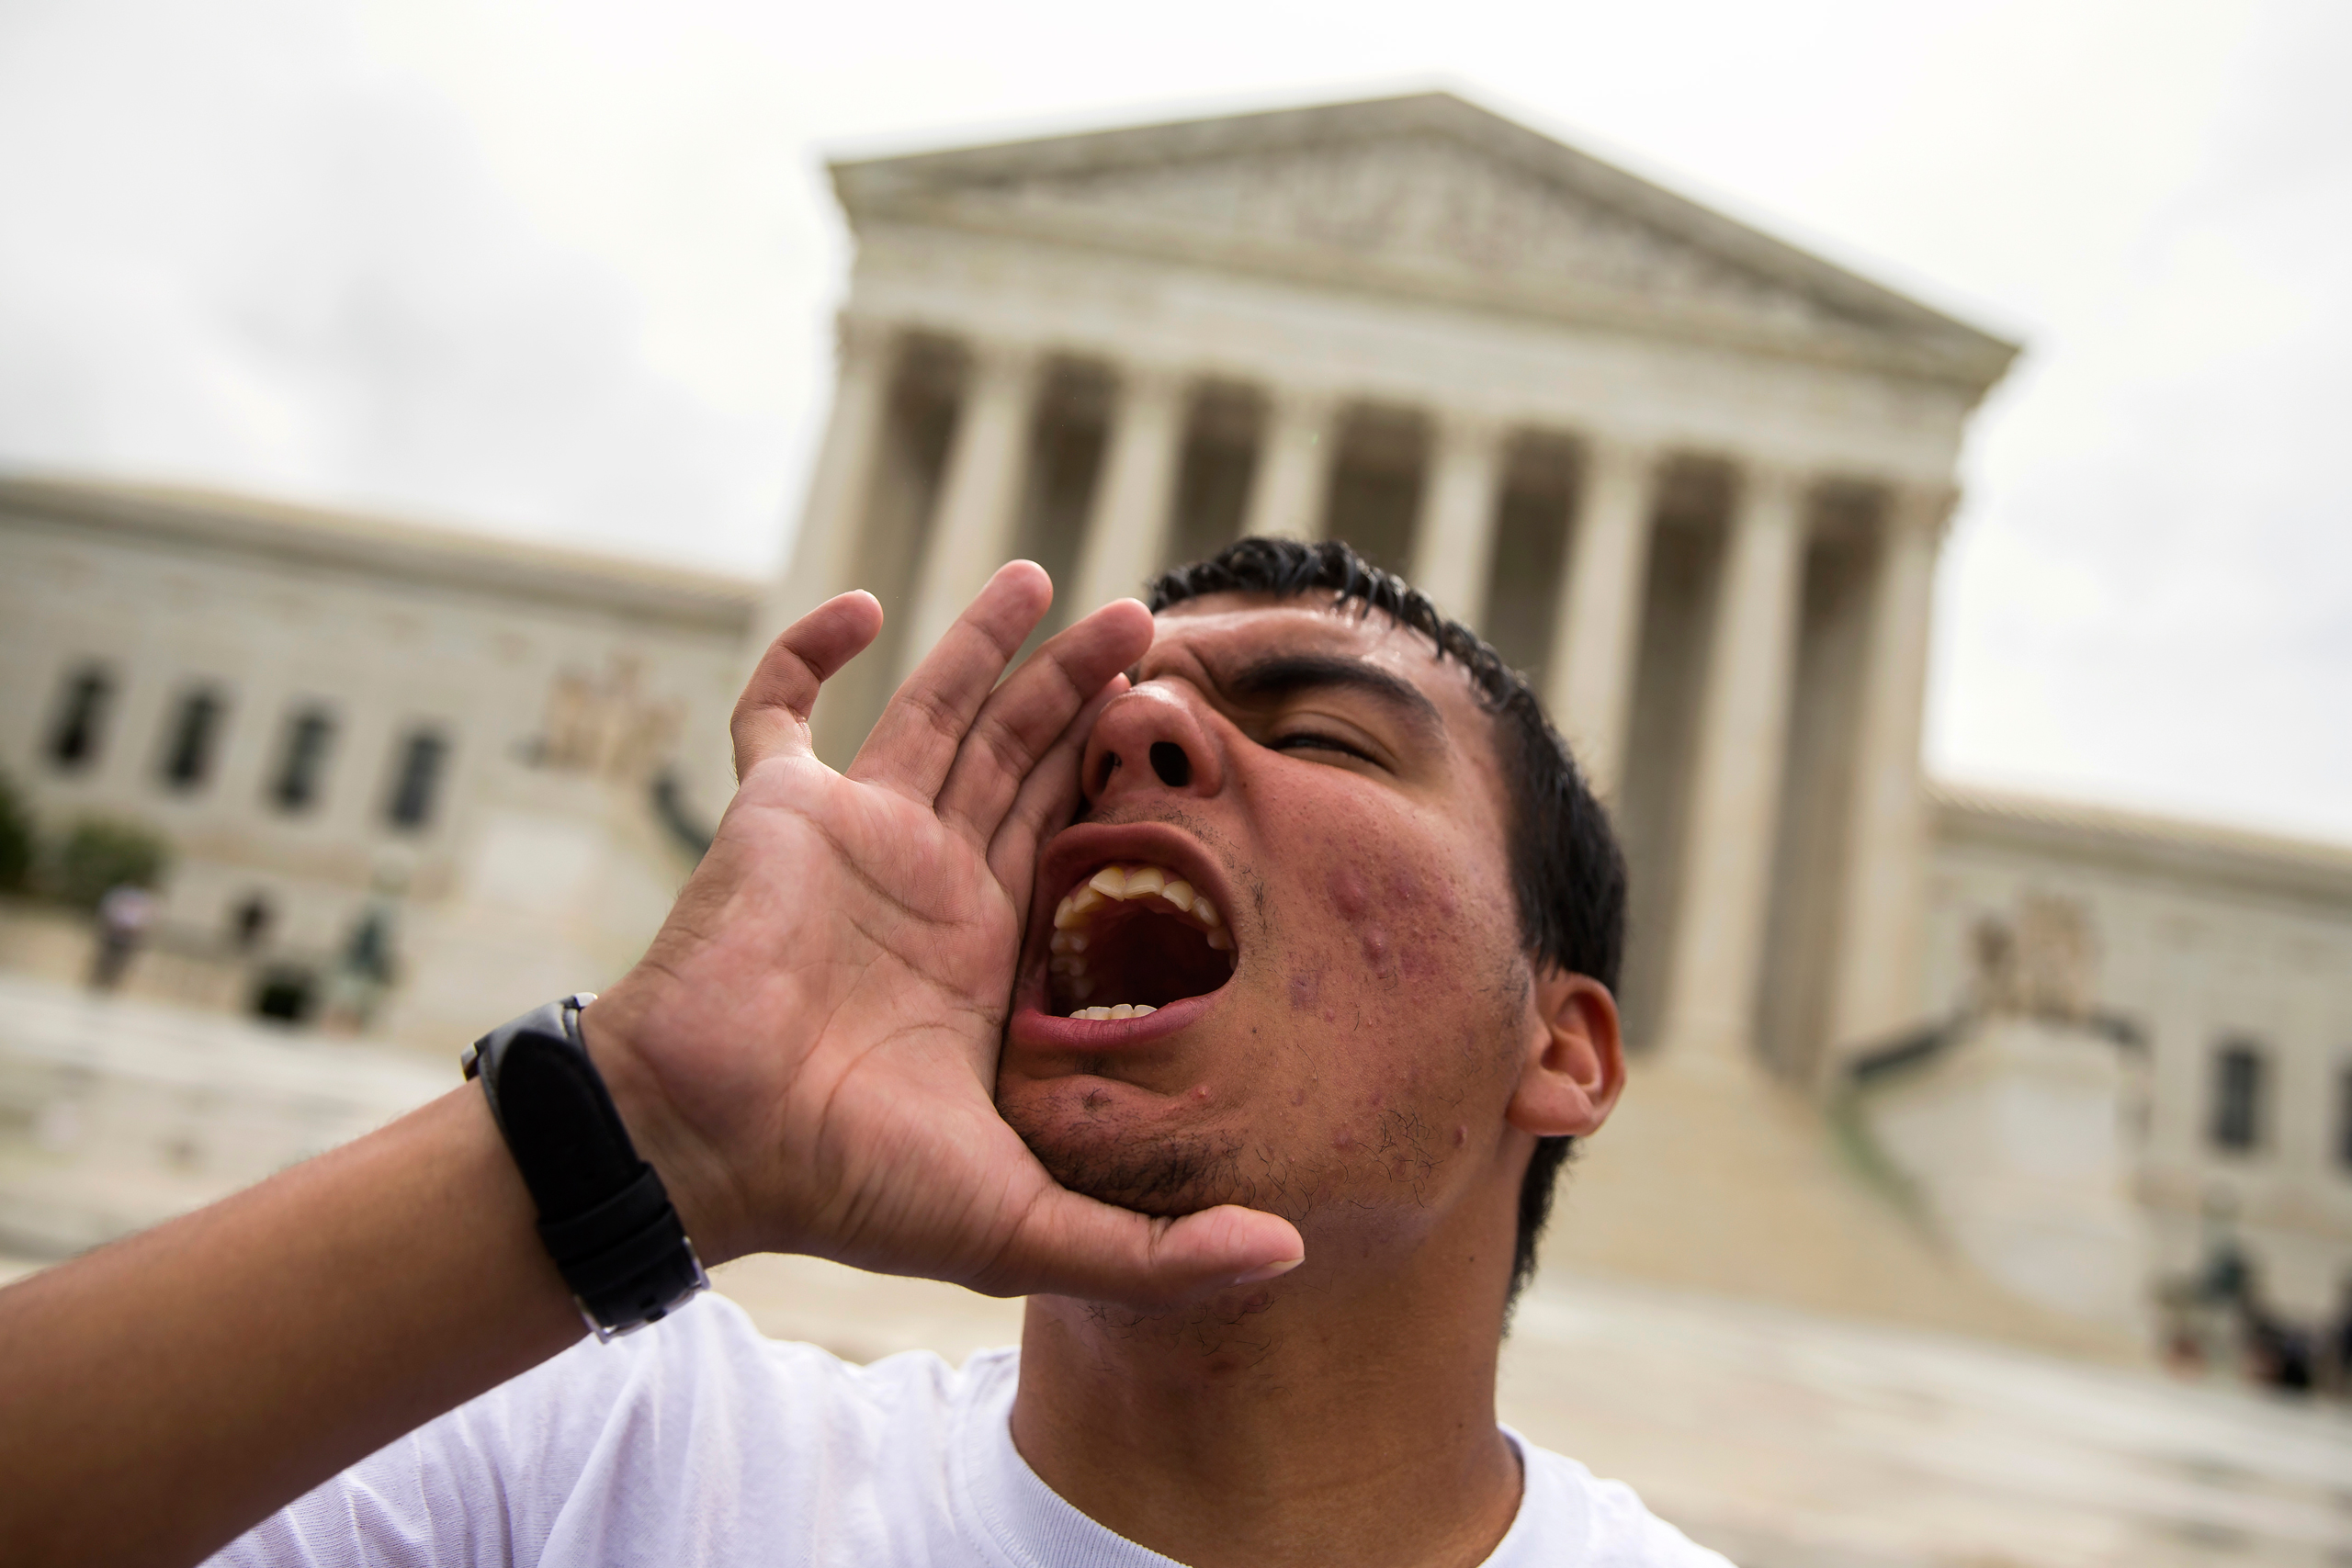 Gerson Quinteron of Washington, yells during a demonstration on immigration at the Supreme Court in Washington on June 23, 2016.